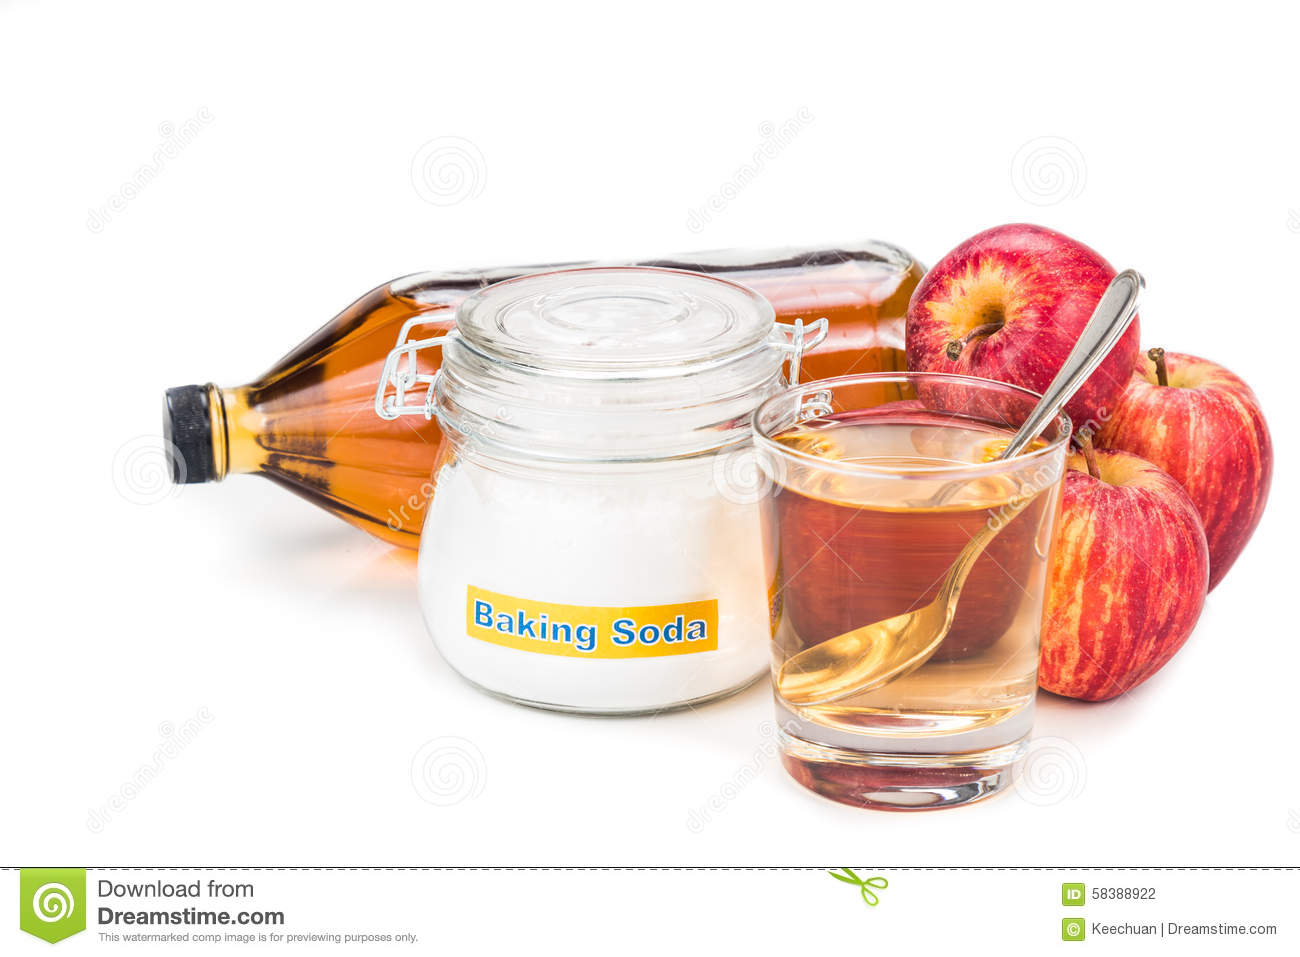 apple cider vinegar and baking soda combination for acid reflux